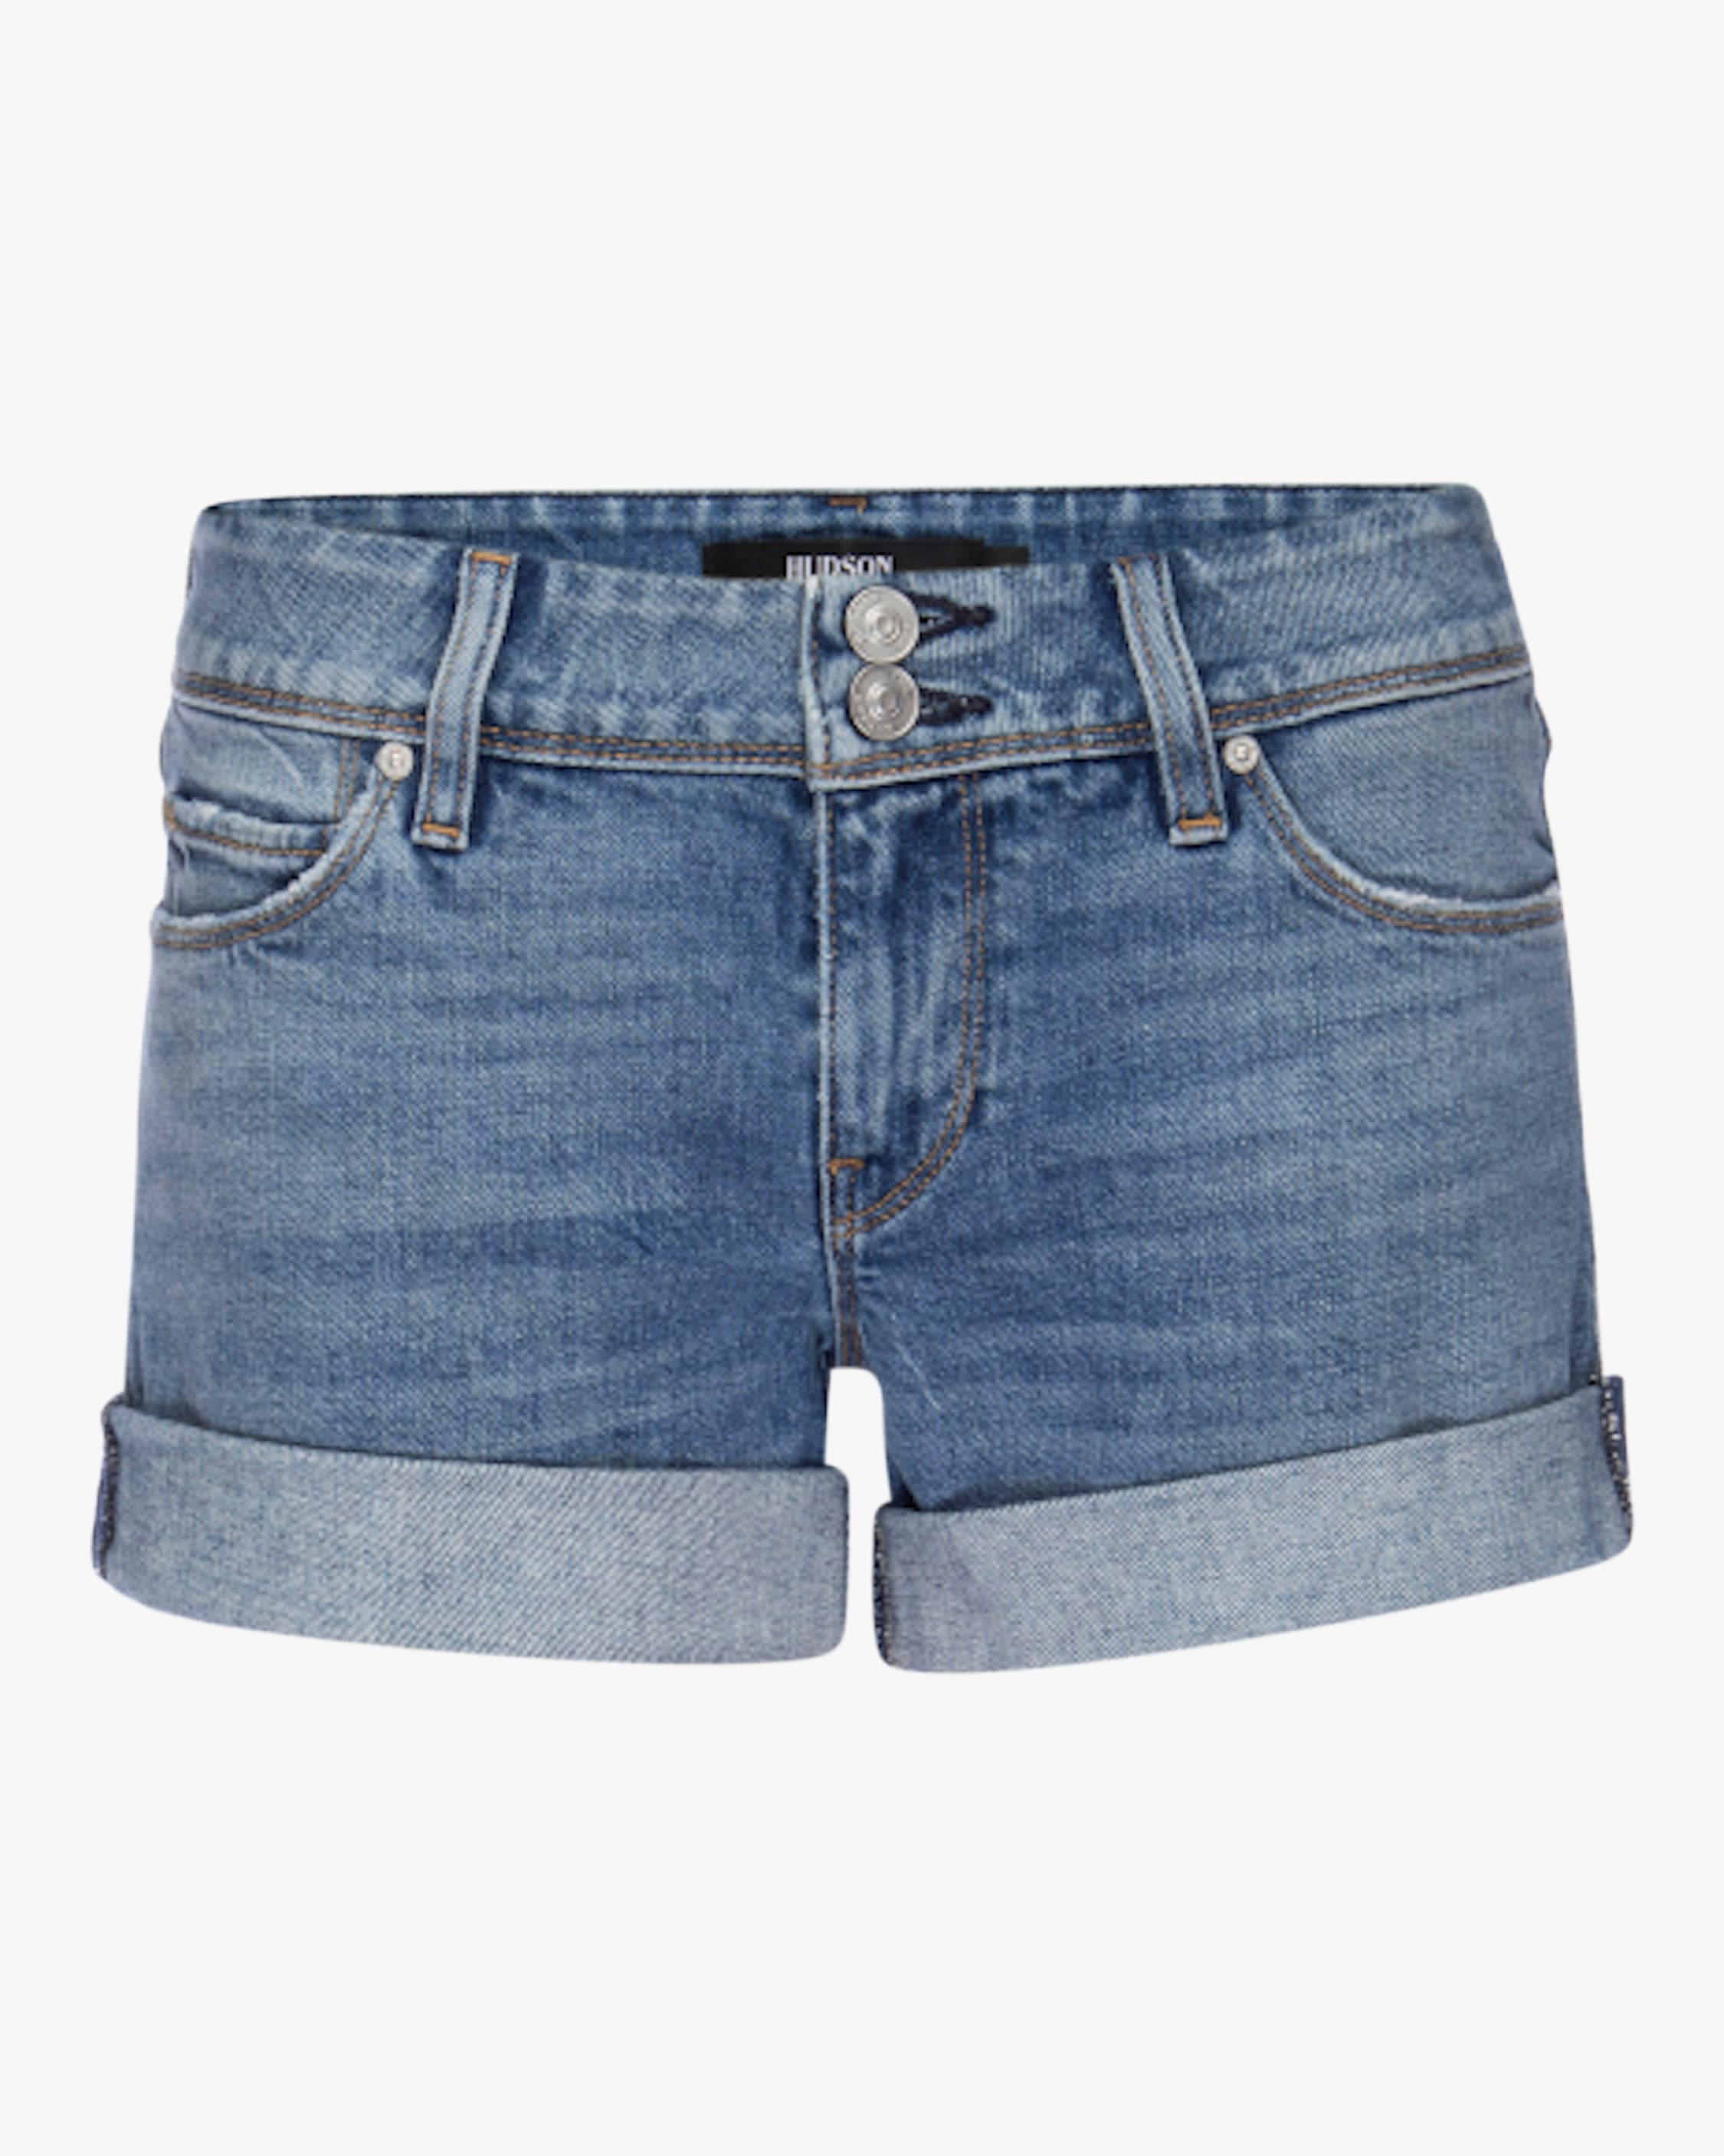 Hudson CROXLEY MID-RISE SHORTS